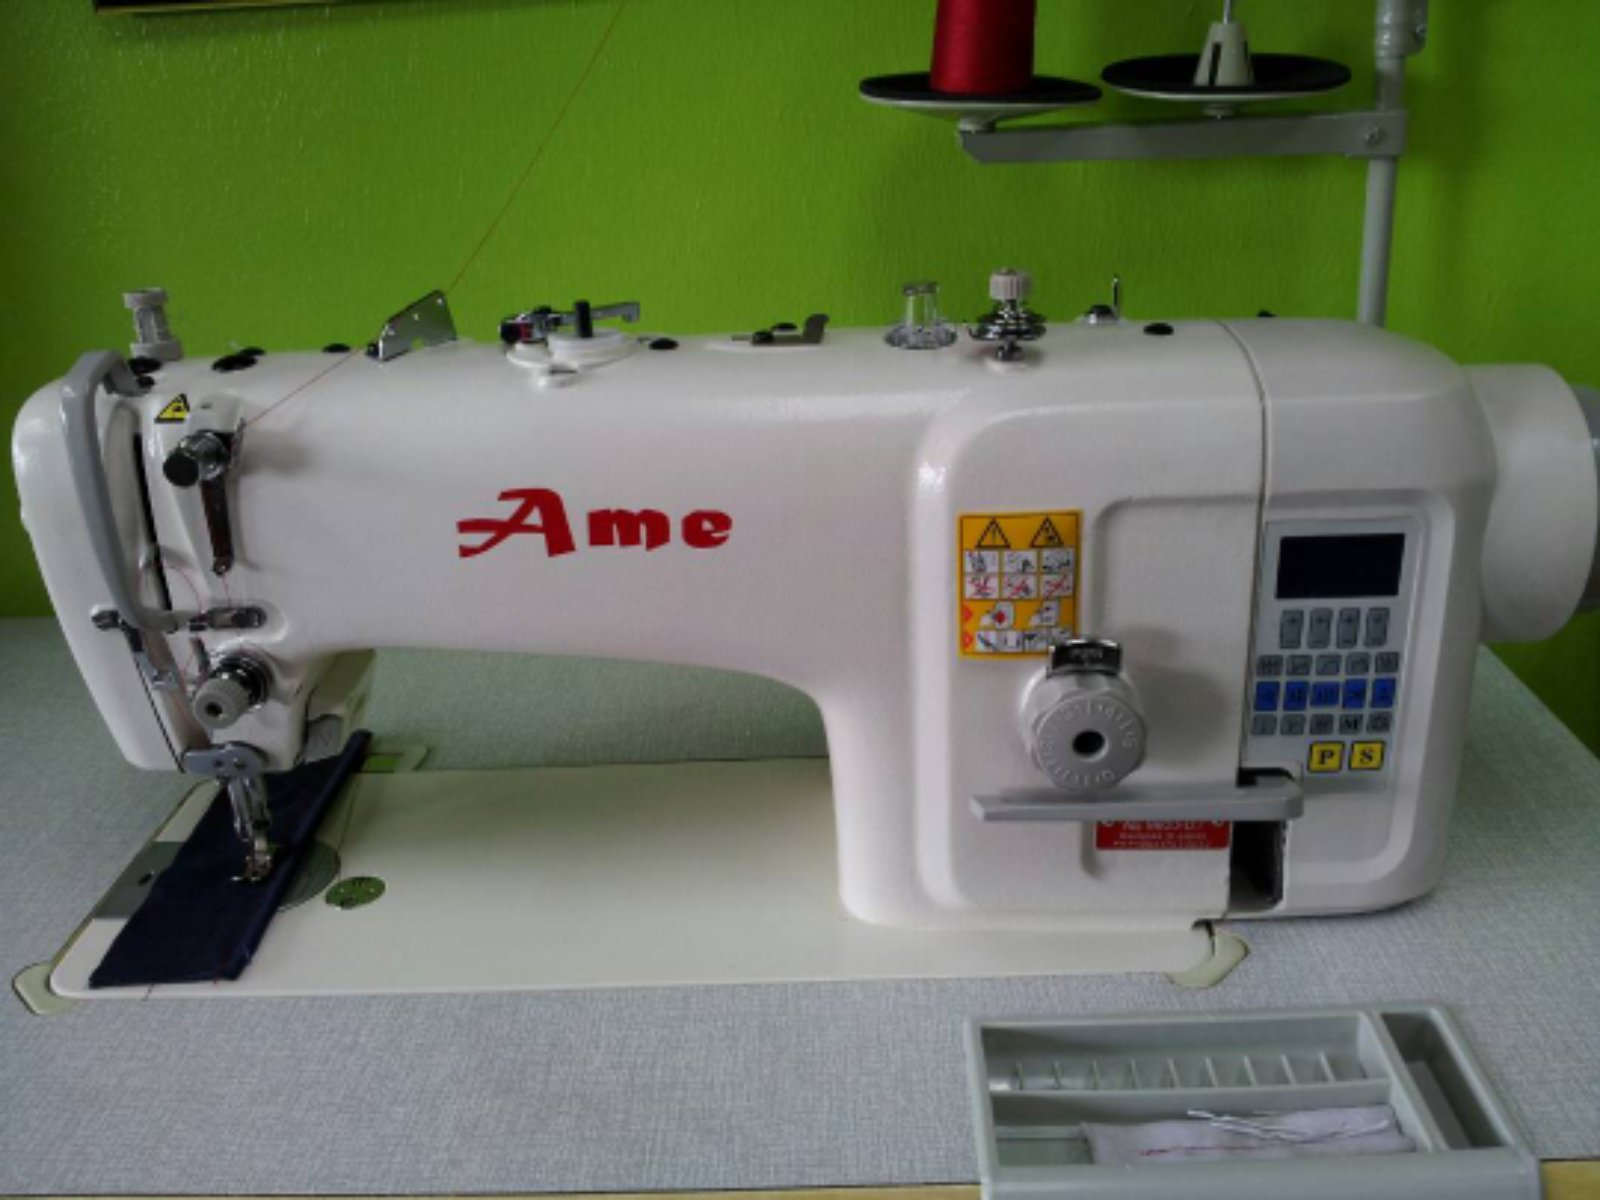 New Brand Auto Hi Speed Sewing Machine!!!@